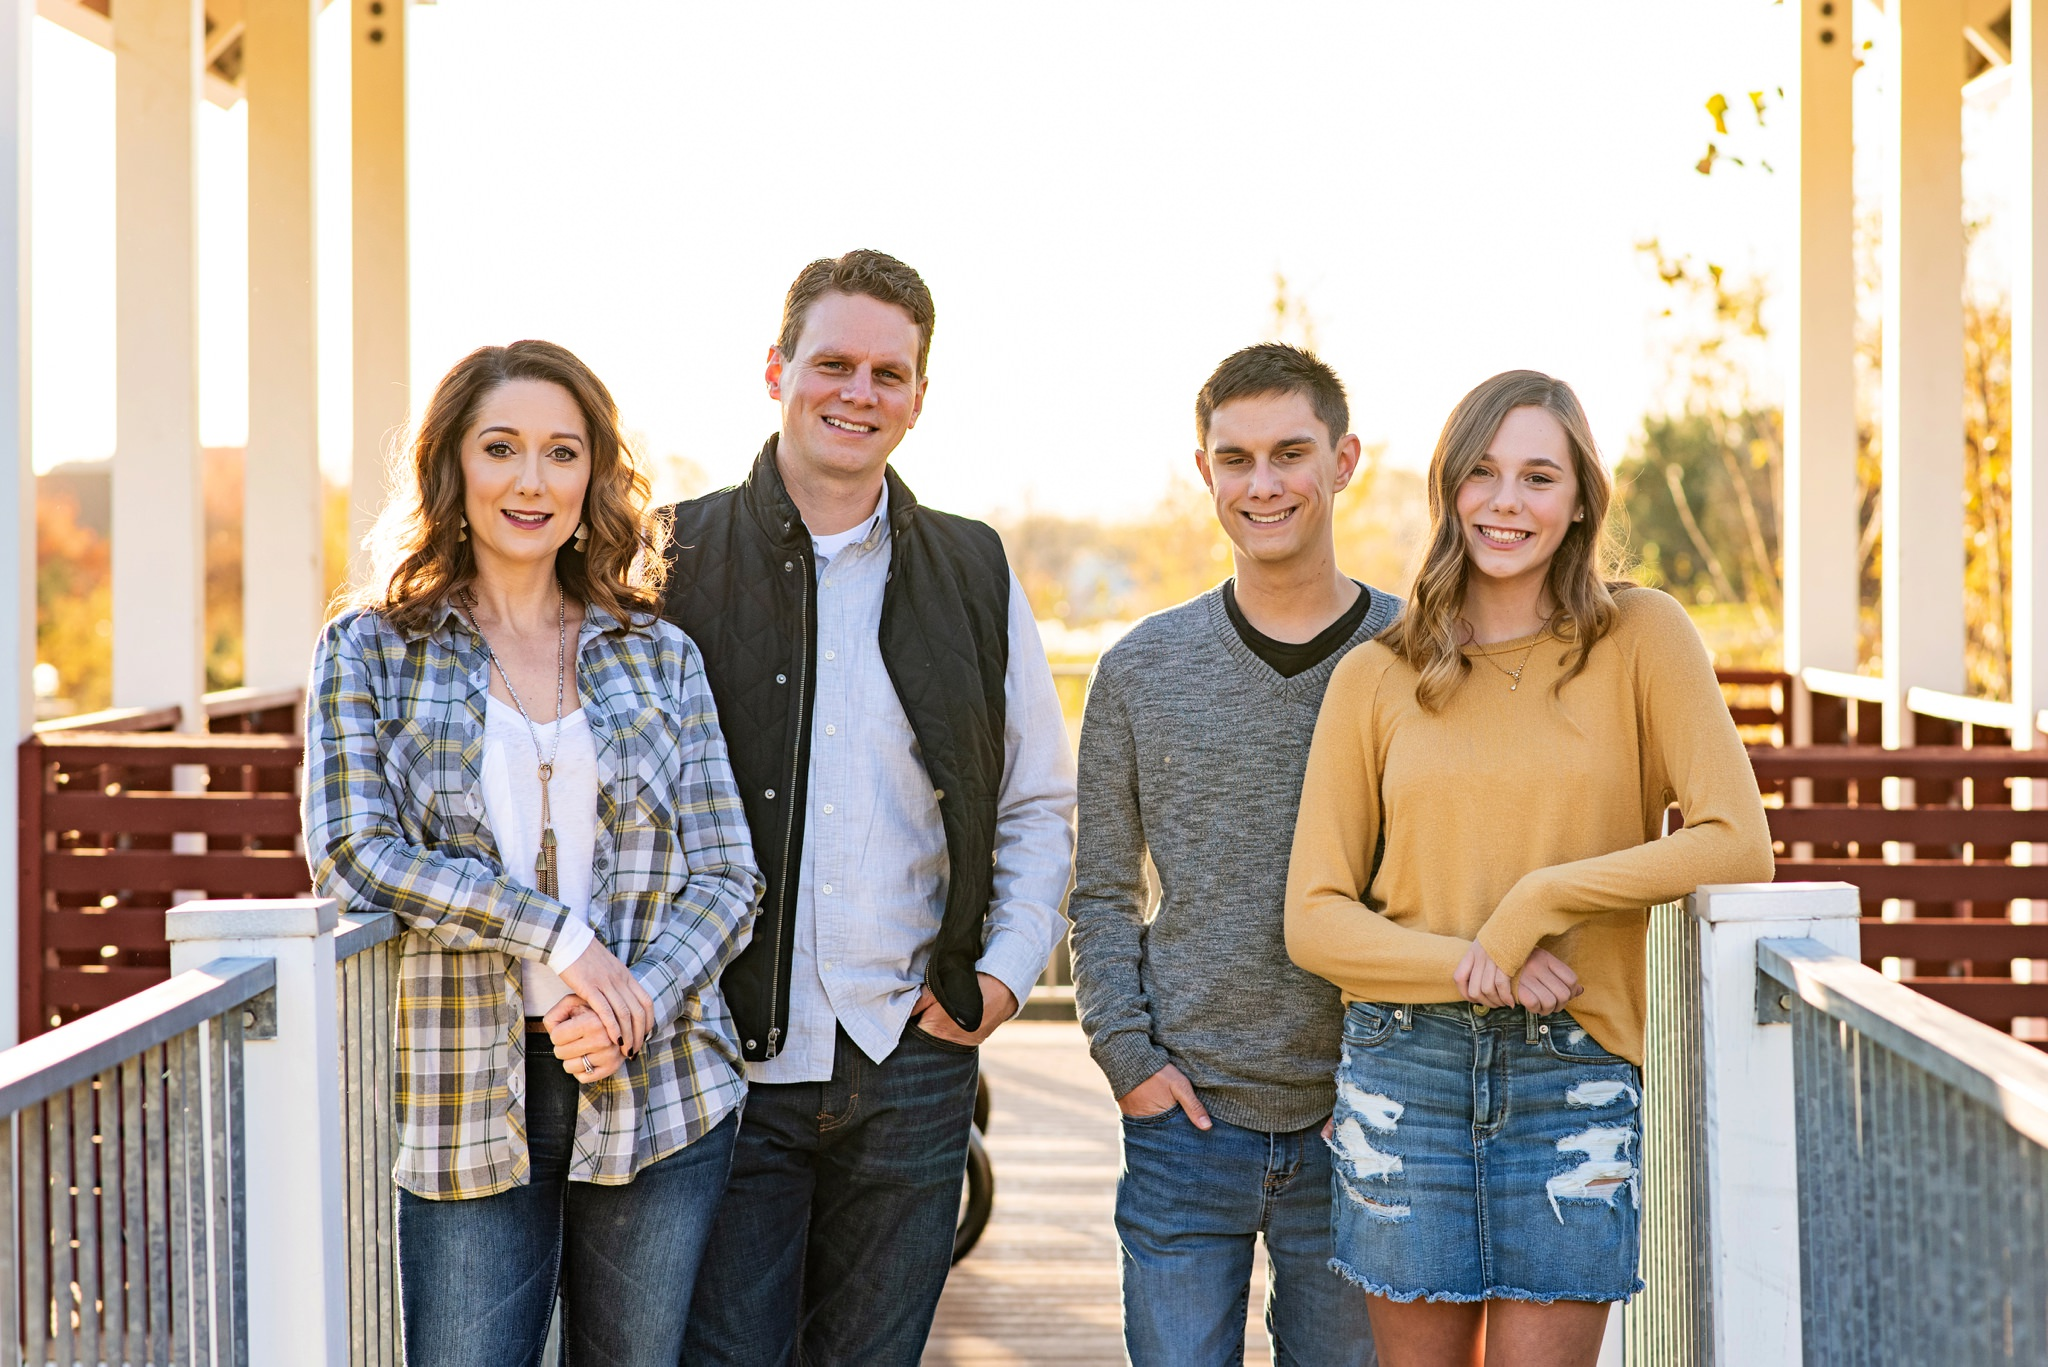 Wittwer-Family-Rotella-Photography-2018-6_WEB.jpg